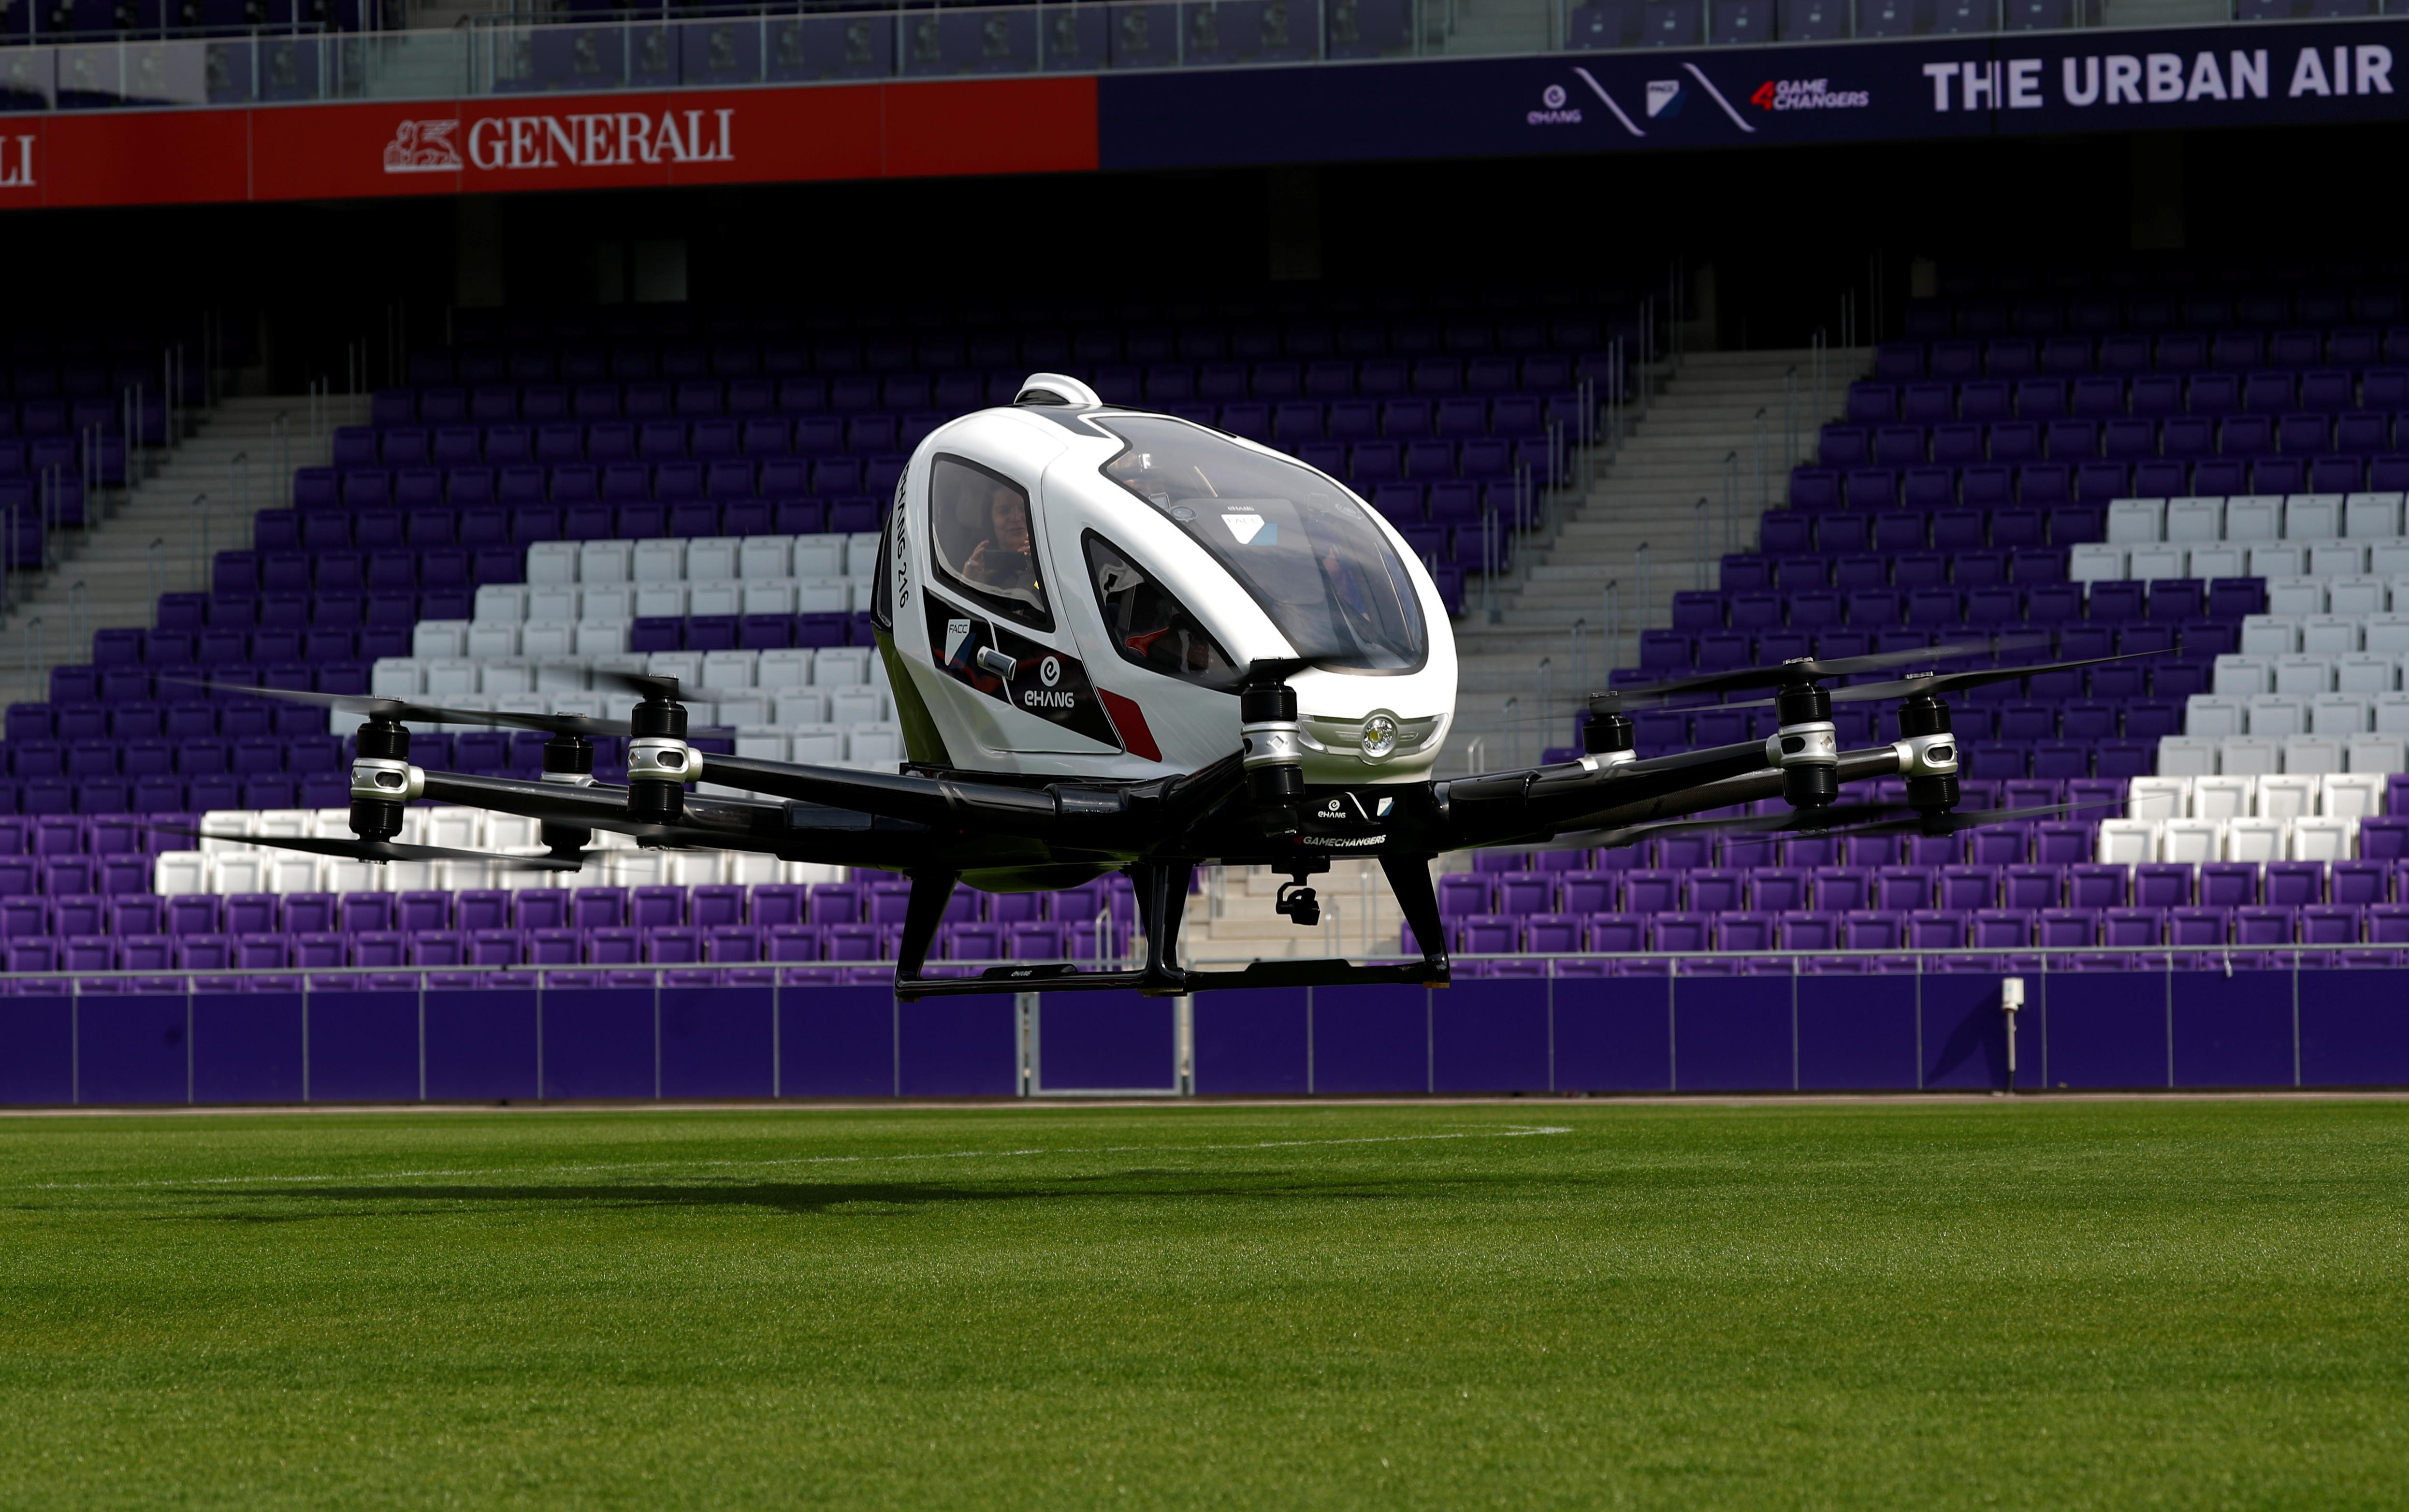 Pilot-less air taxi takes off in Vienna demonstration flight - Reuters